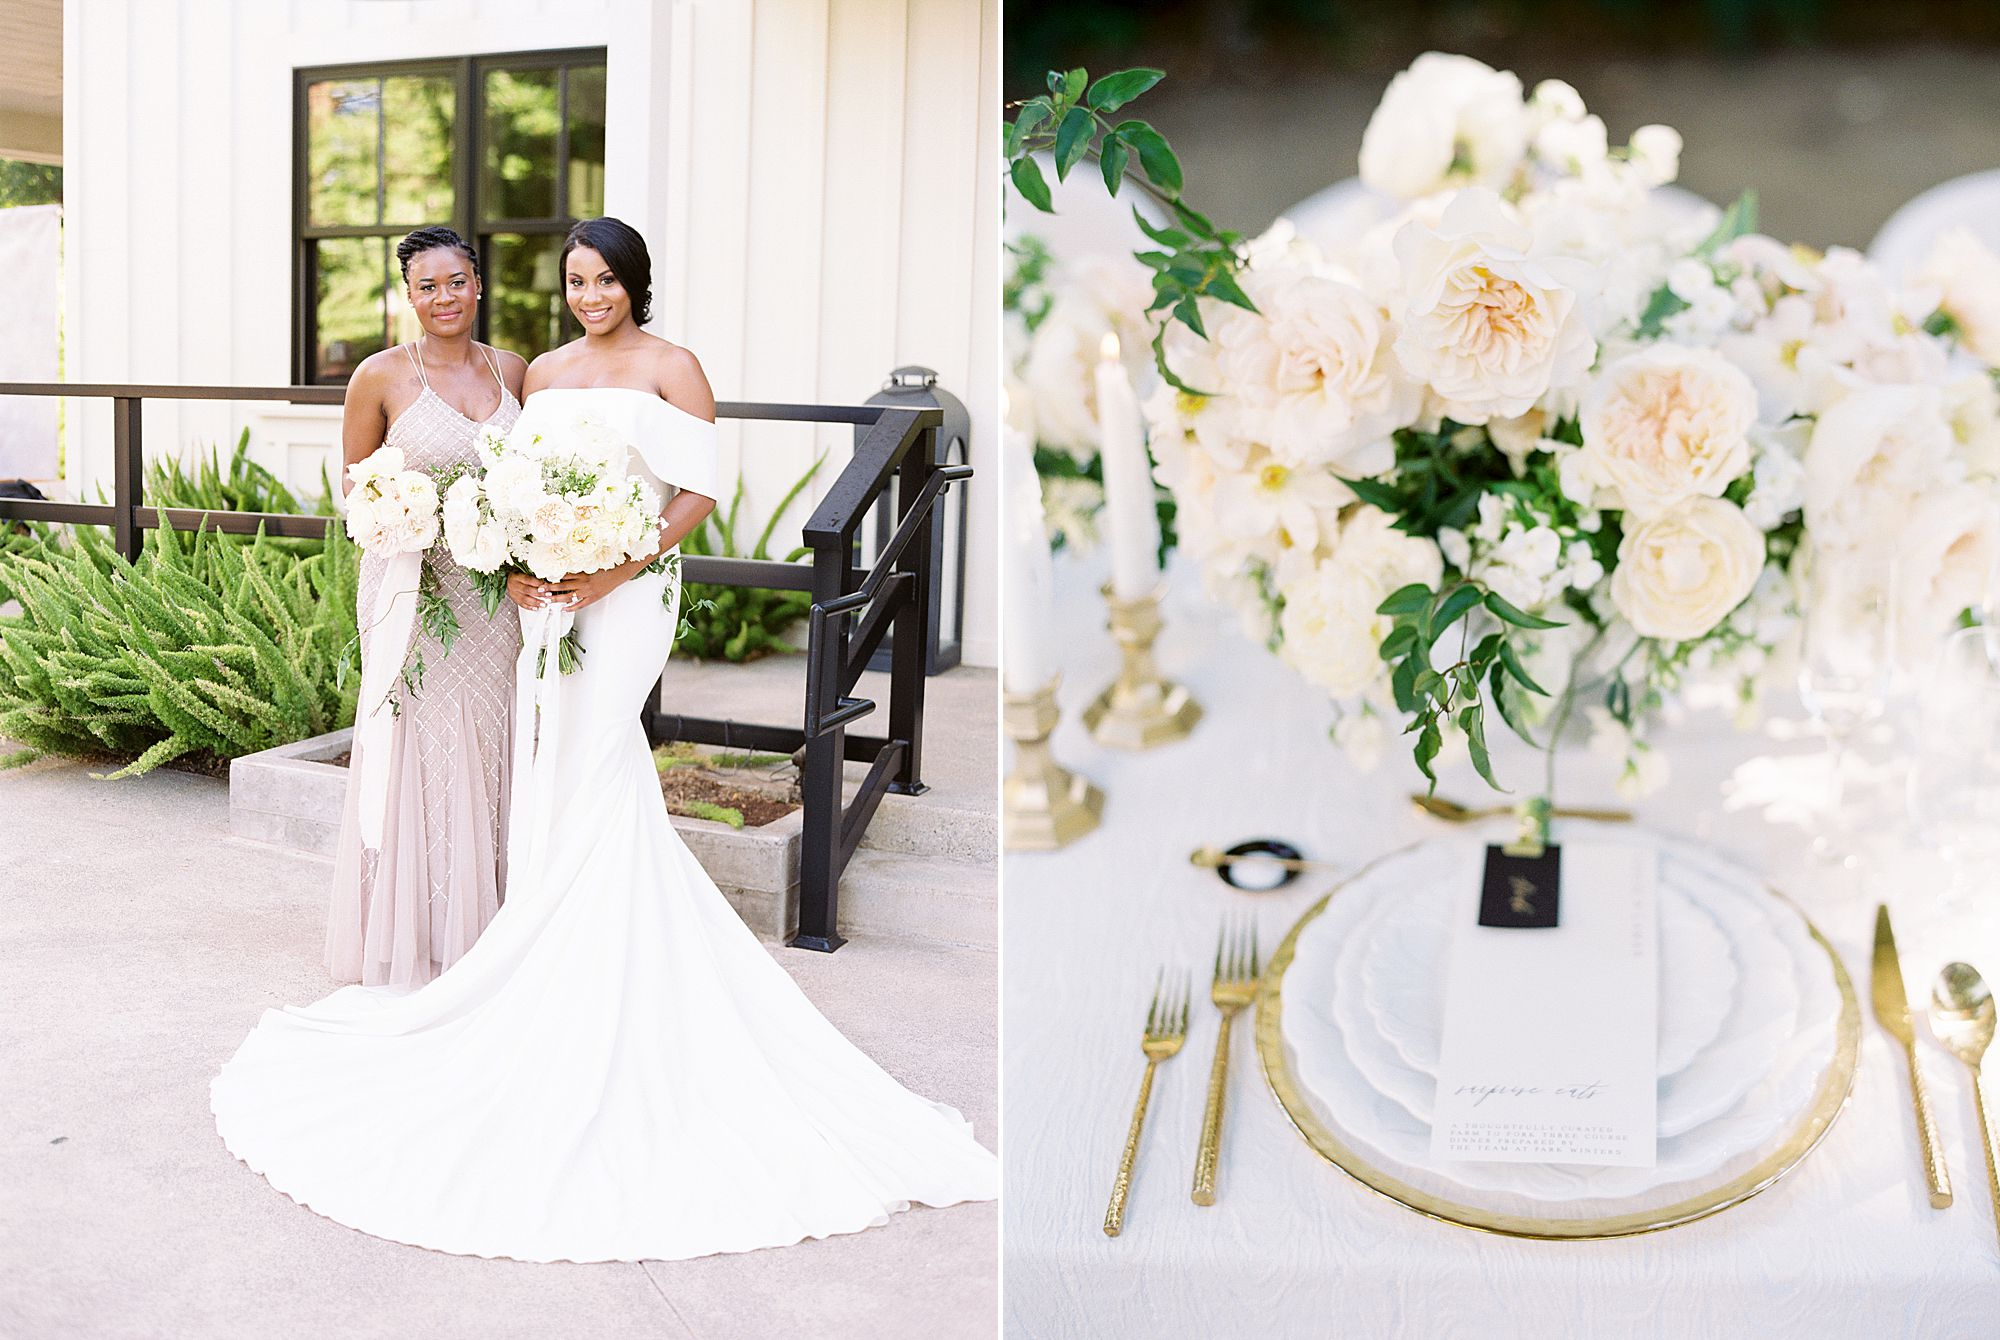 Park Winters Micro-Wedding Inspiration on Style Me Pretty - Stephanie Teague Events - Ashley Baumgartner - Park Winters Wedding - Black Tie Wedding - Micro-Wedding Sacramento Photographer_0071.jpg